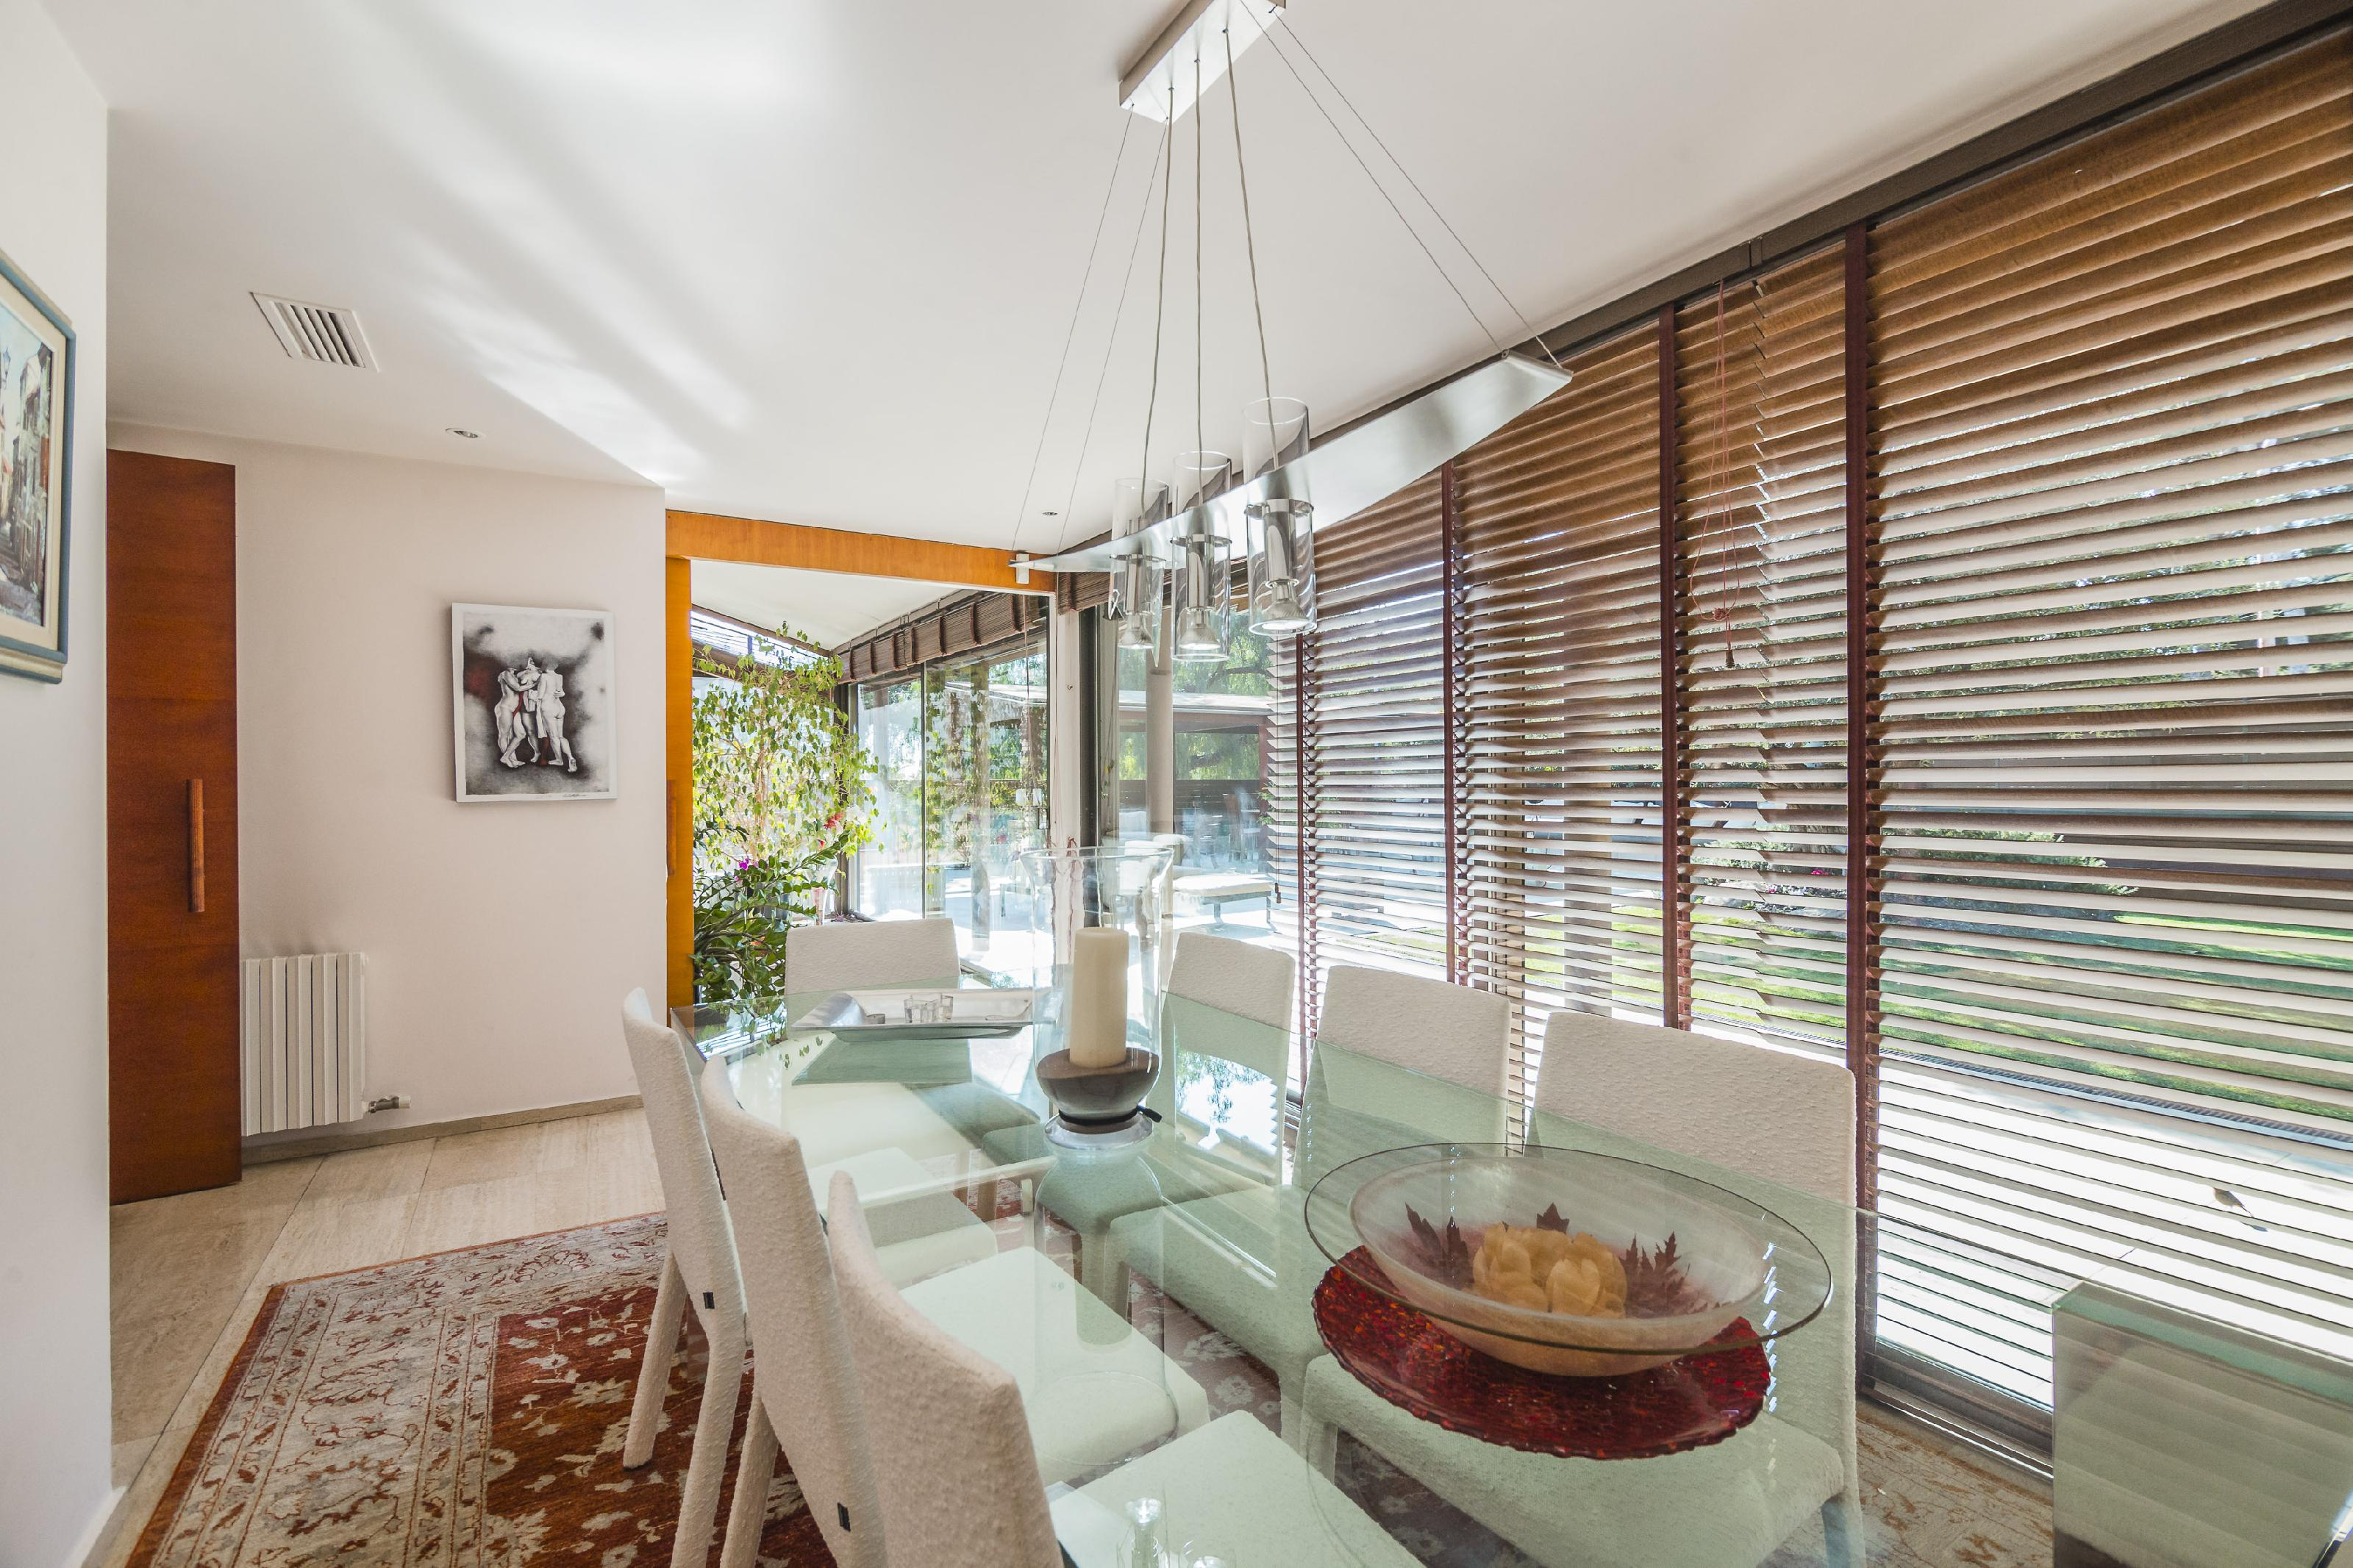 121070 Secluded House for sale in Les Corts, Pedralbes 29